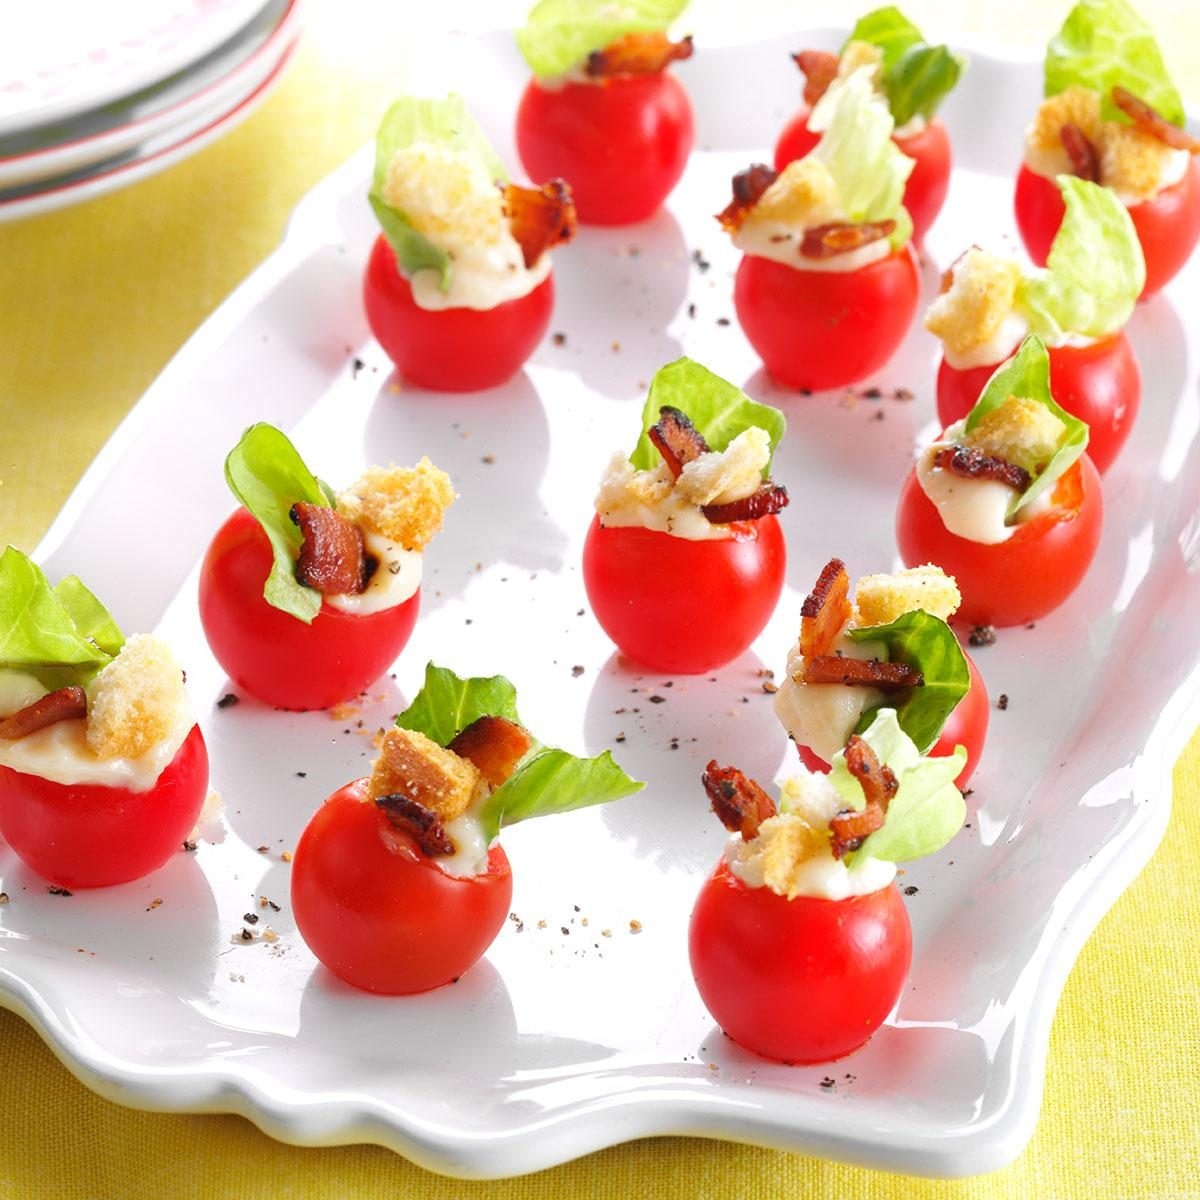 Party Food Spread For Kids: Mini BLT Appetizers Recipe